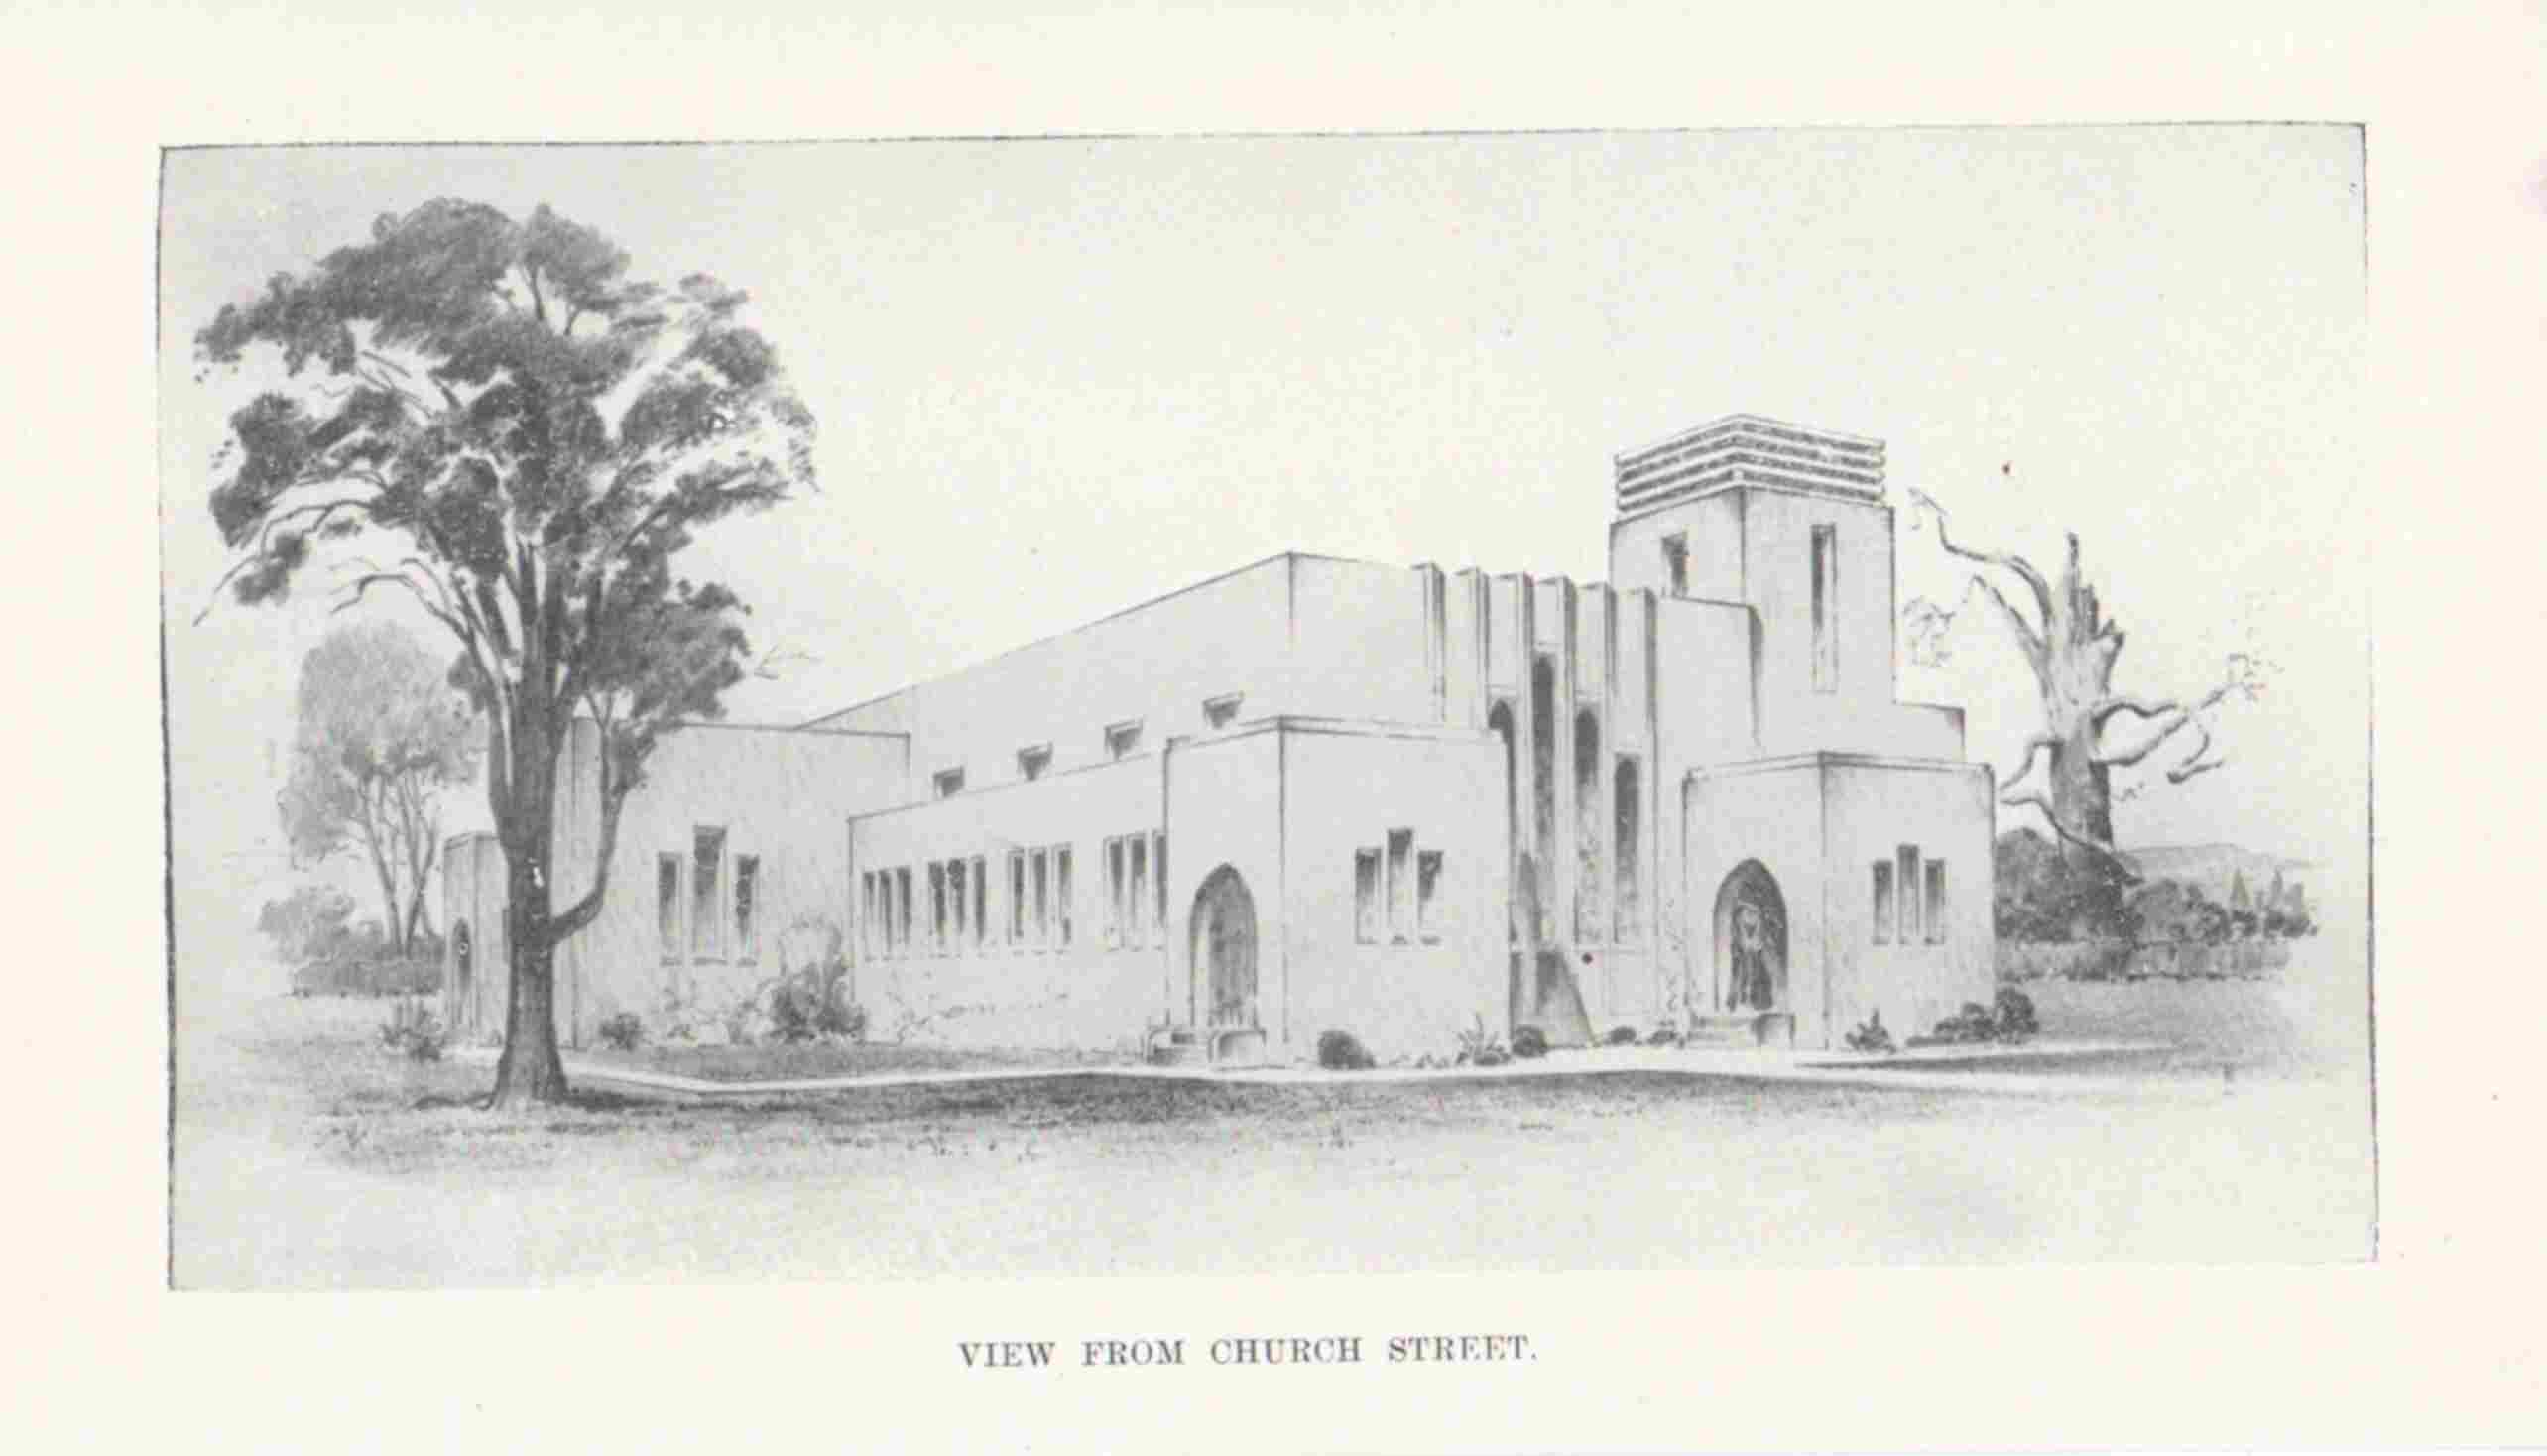 Architect's sketch of proposed new church